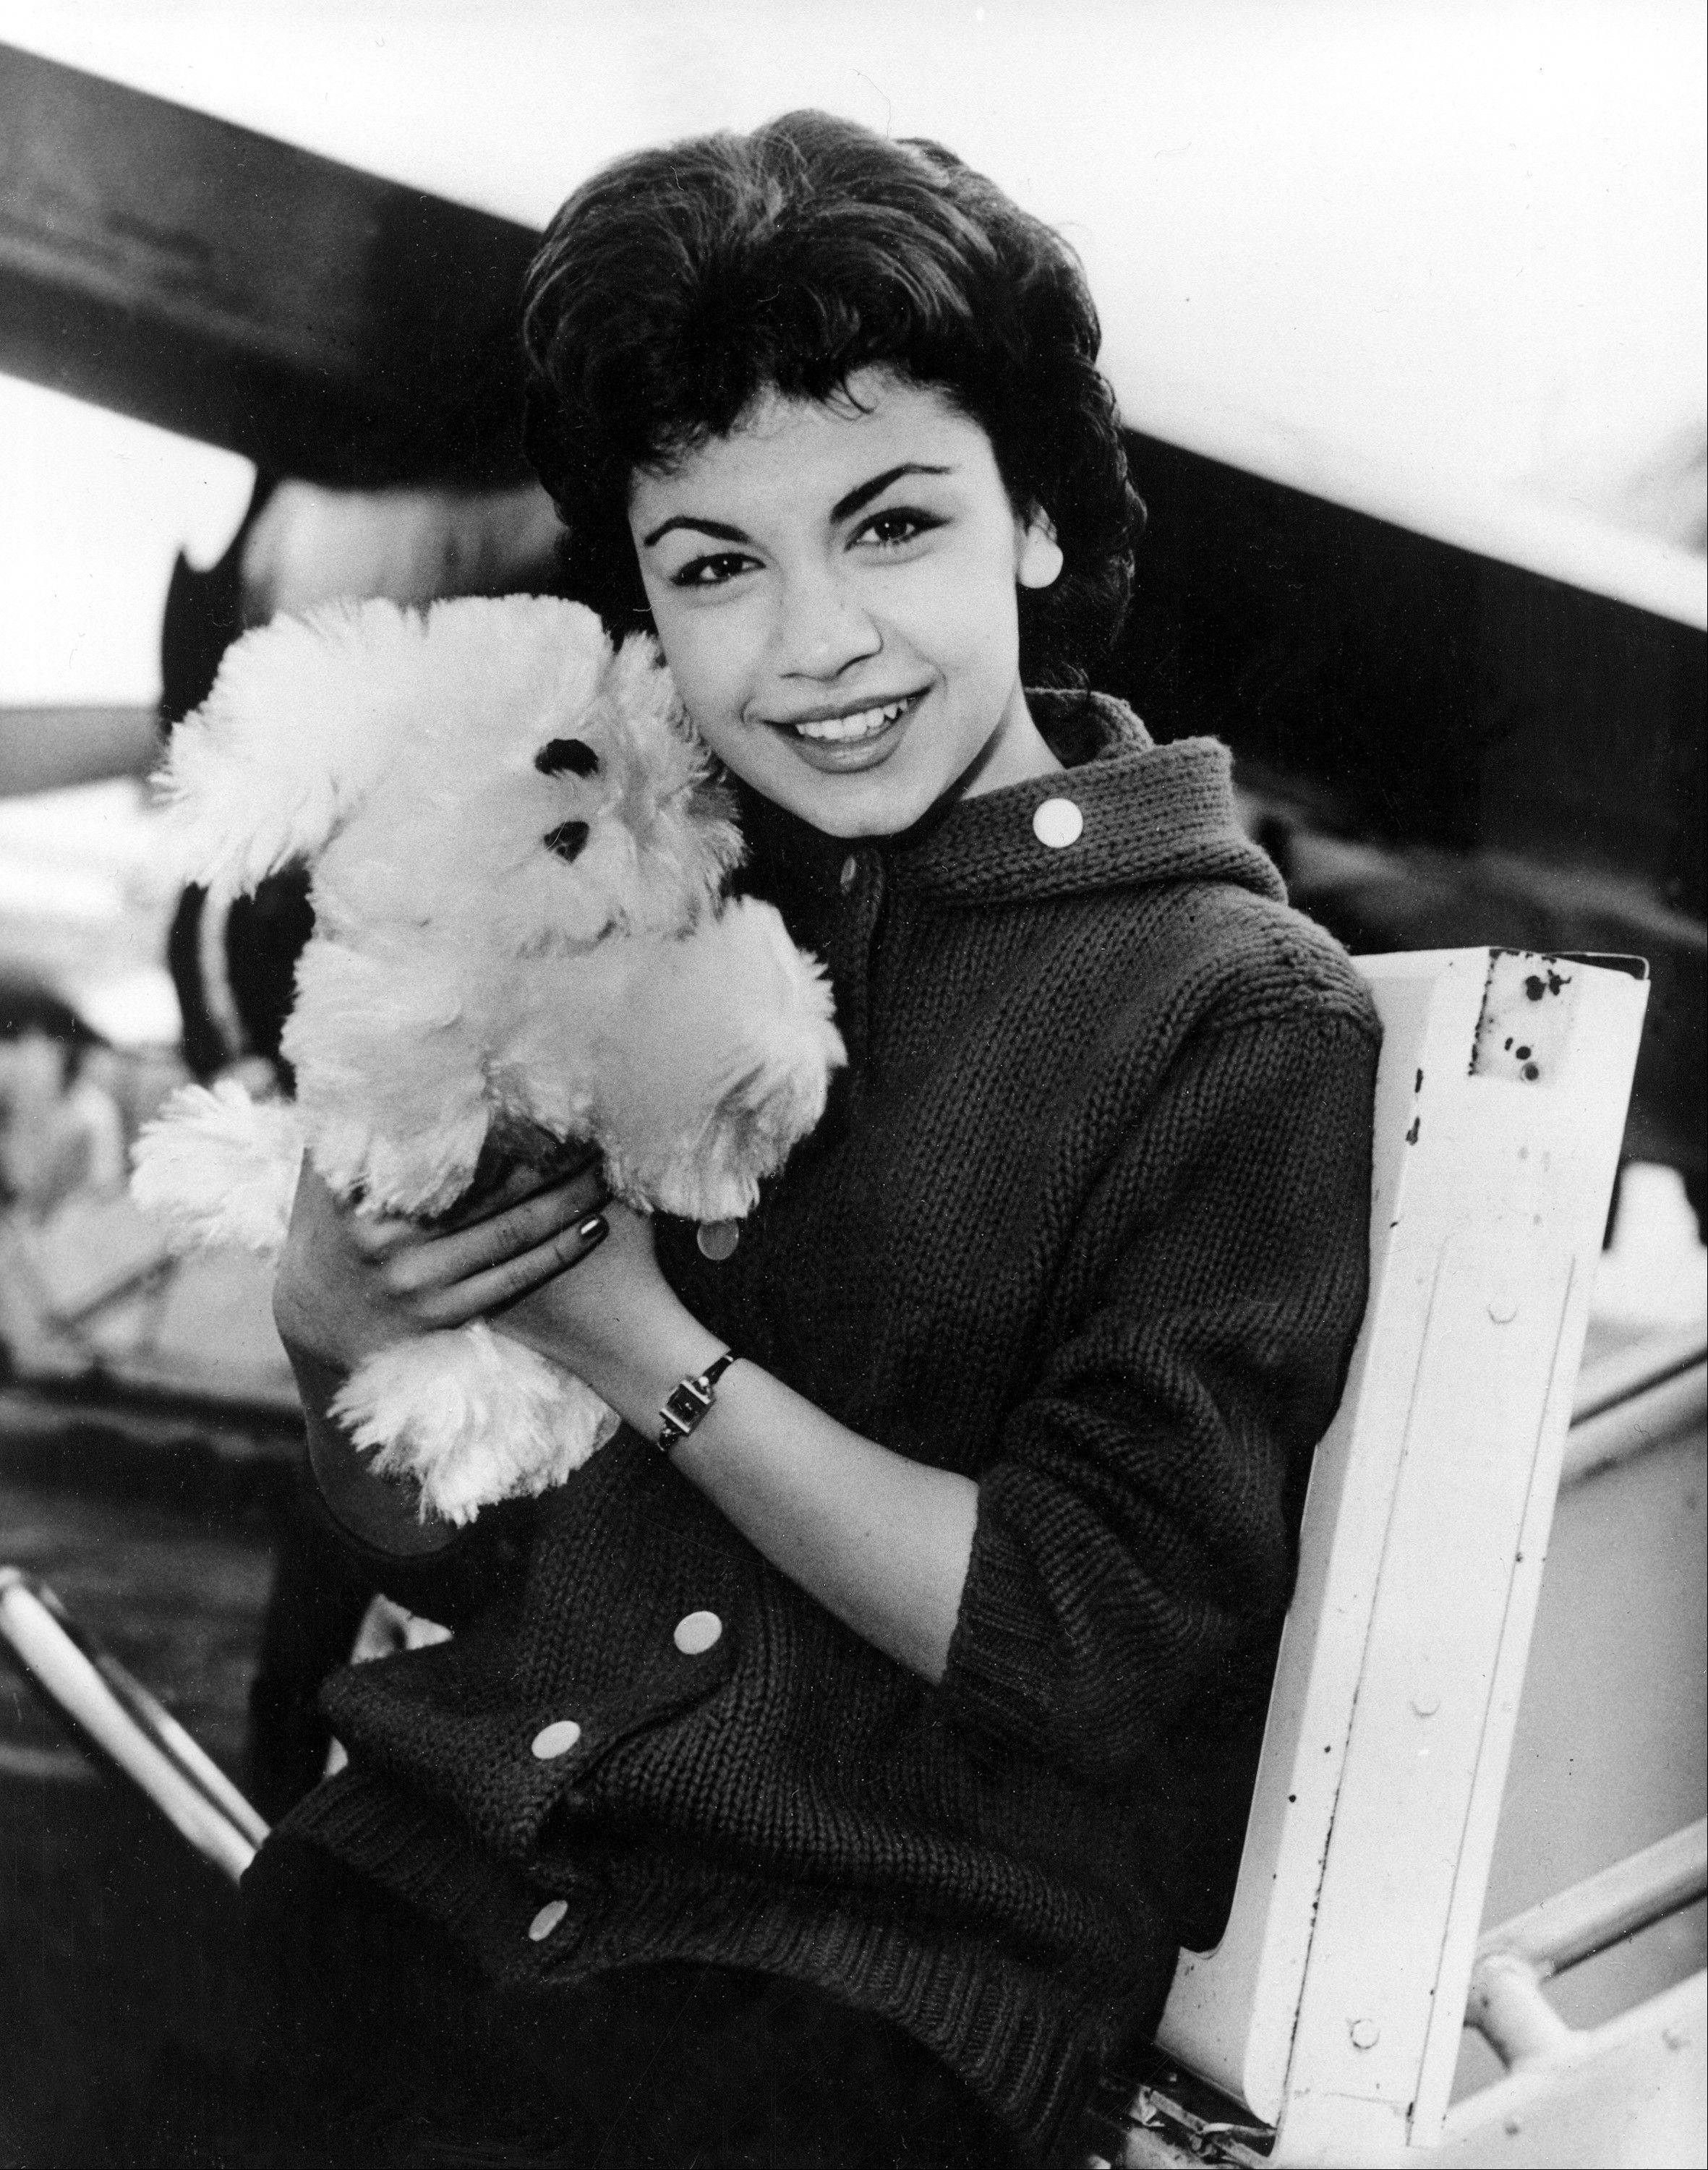 Walt Disney studio�s star, 16-year-old Annette Funicello, poses with her Shaggy Dog doll.